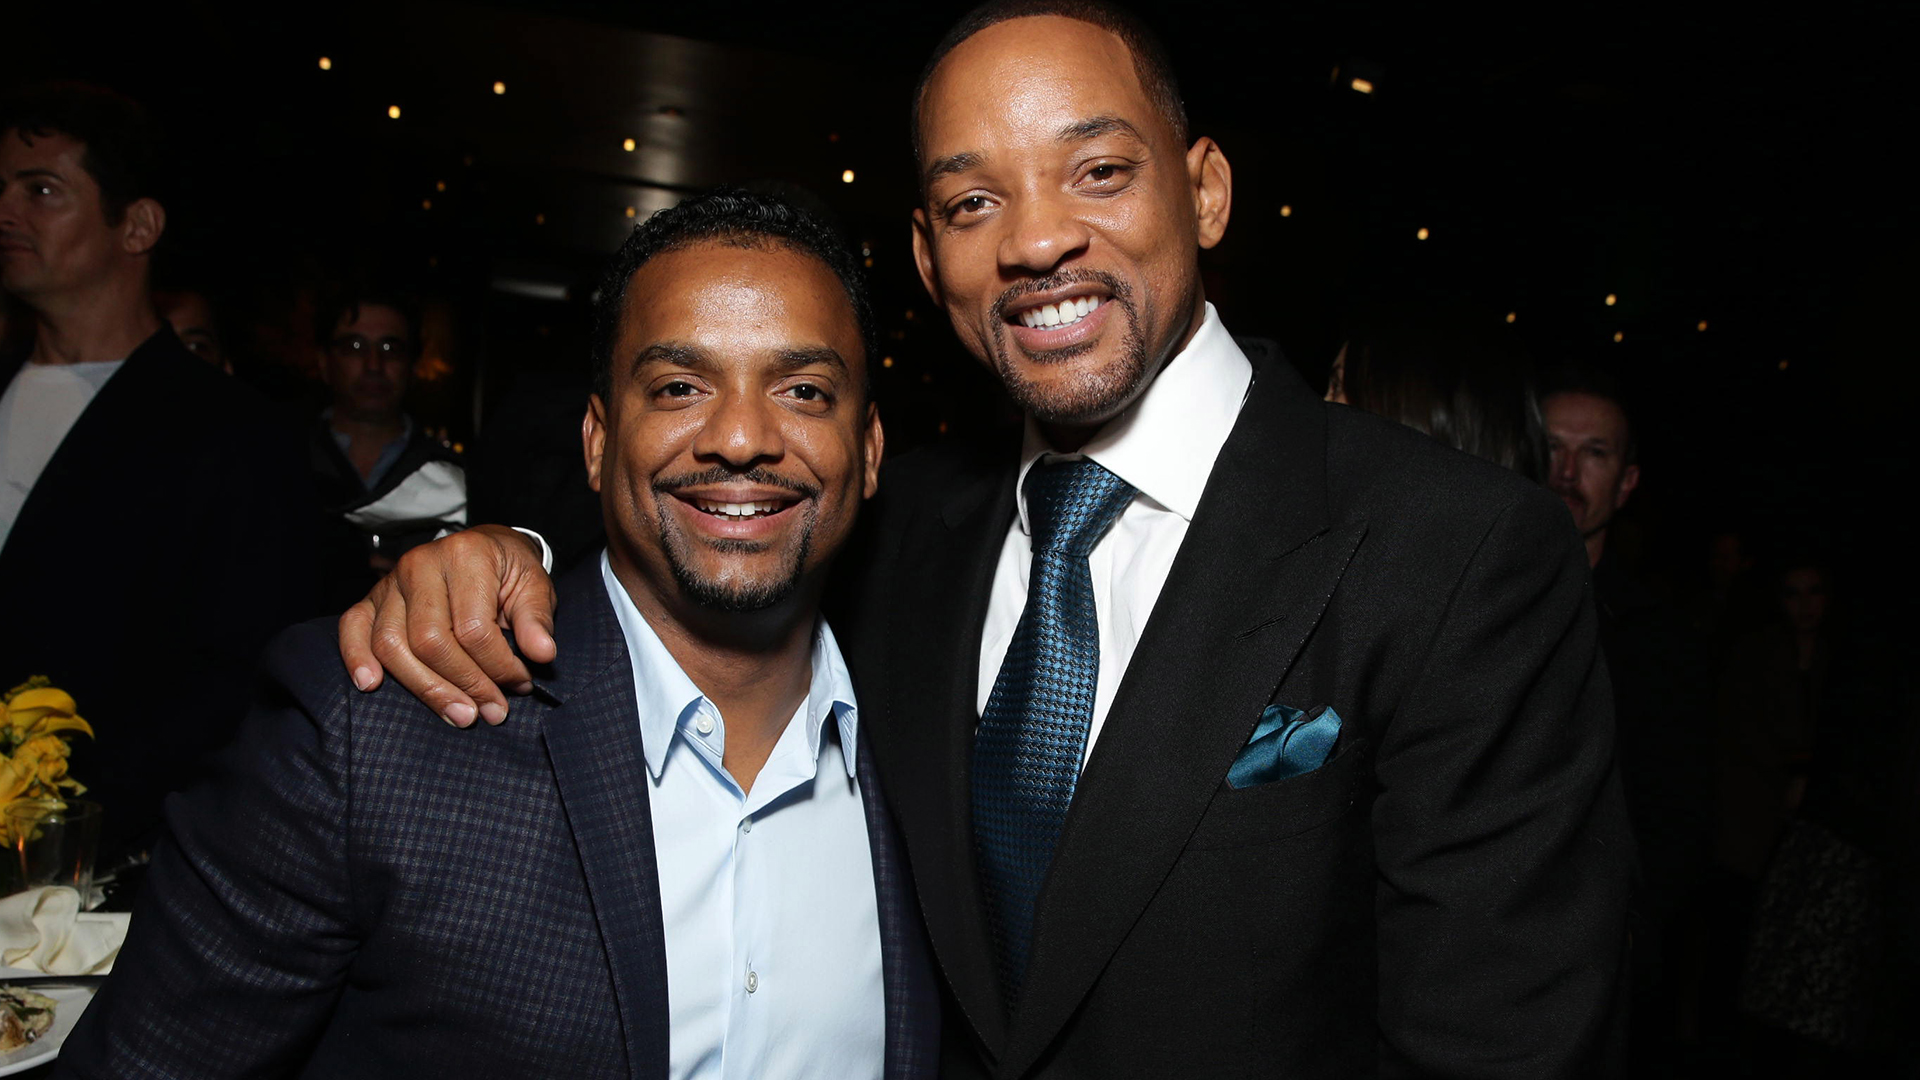 will smith shares throwback pic with tom cruise and alfonso ribeiro